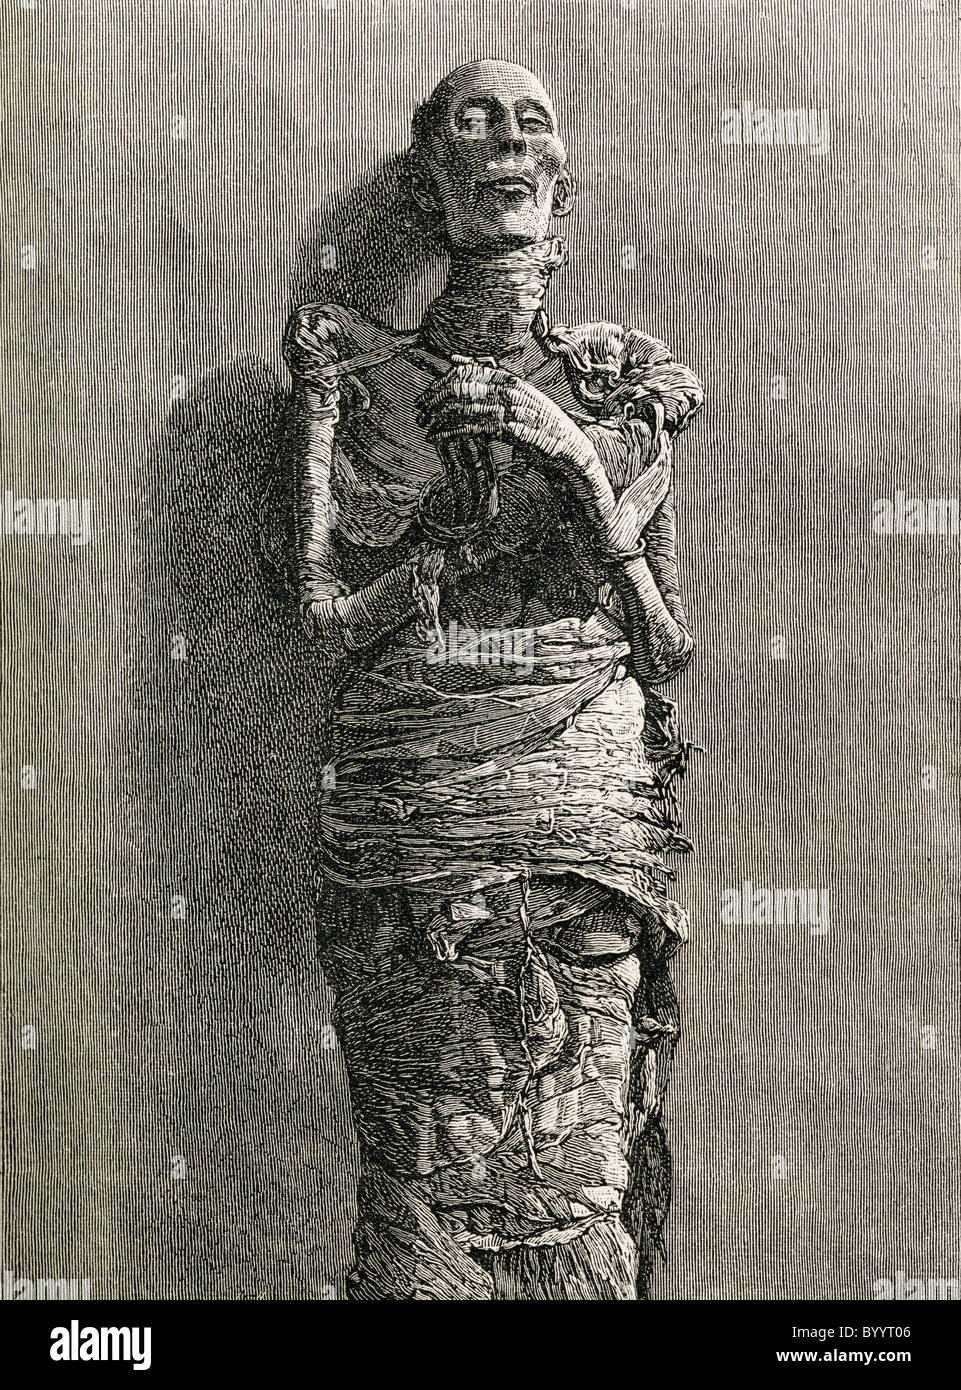 The Mummy of Ramesses II, reigned 1279 BC to 1213 BC aka Ramesses the Great. - Stock Image